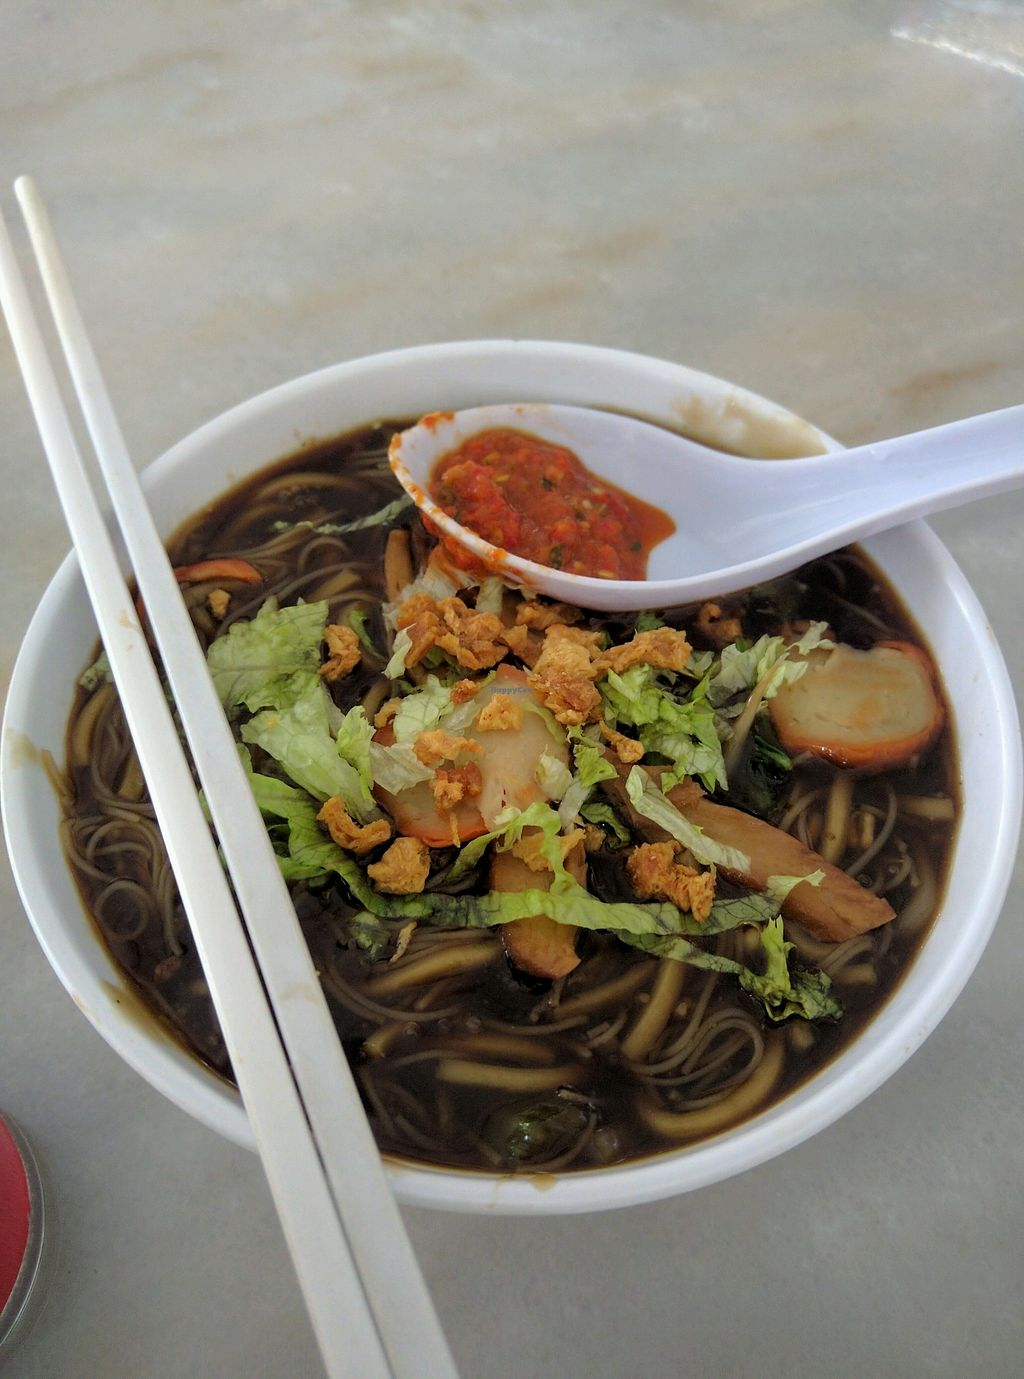 """Photo of CLOSED: Shan Lai Vegetarian Stall  by <a href=""""/members/profile/Summer_Tan"""">Summer_Tan</a> <br/>Vegetarian Lor Mee with Mock Meat, Mushrooms, Tofu. Request for Chilli (kinda lime Sambal) and Black Vinegar to really make it tasty! = Cheap and good! Definitely a good vegetarian alternatives to the usual hawker food <br/> January 28, 2018  - <a href='/contact/abuse/image/46713/351994'>Report</a>"""